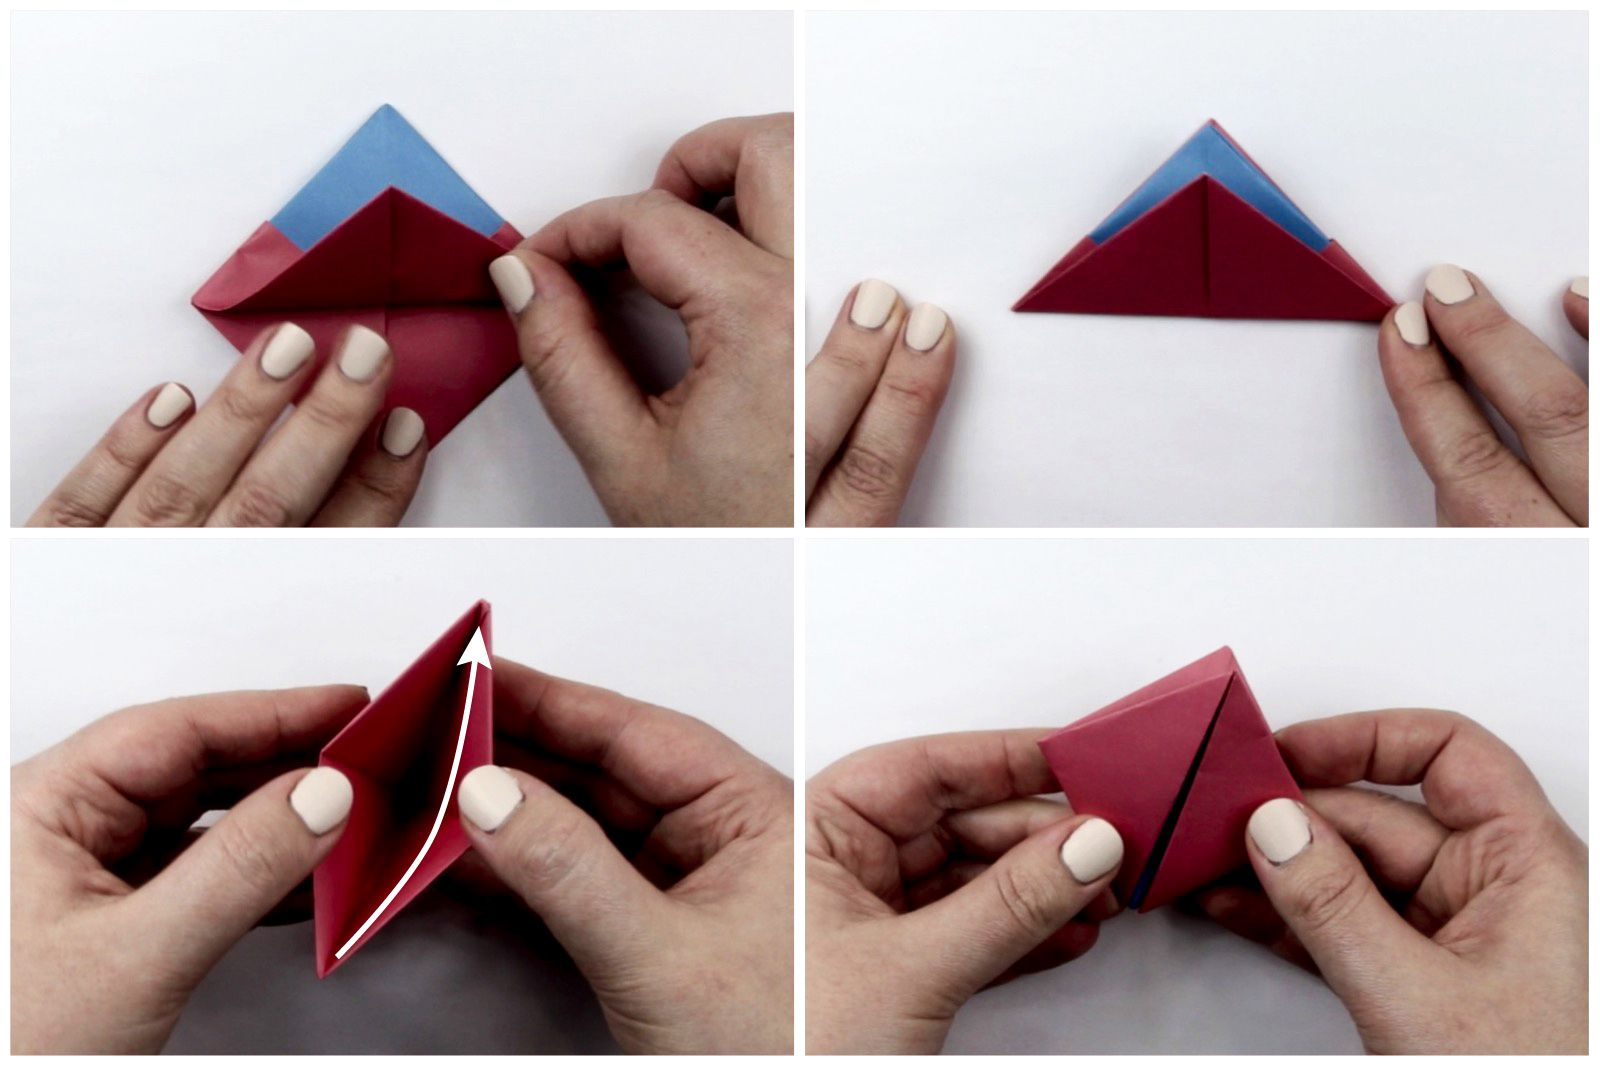 How To Make A Paper Boat That Floats In Water Easy | Paper Boat ... | 1066x1600